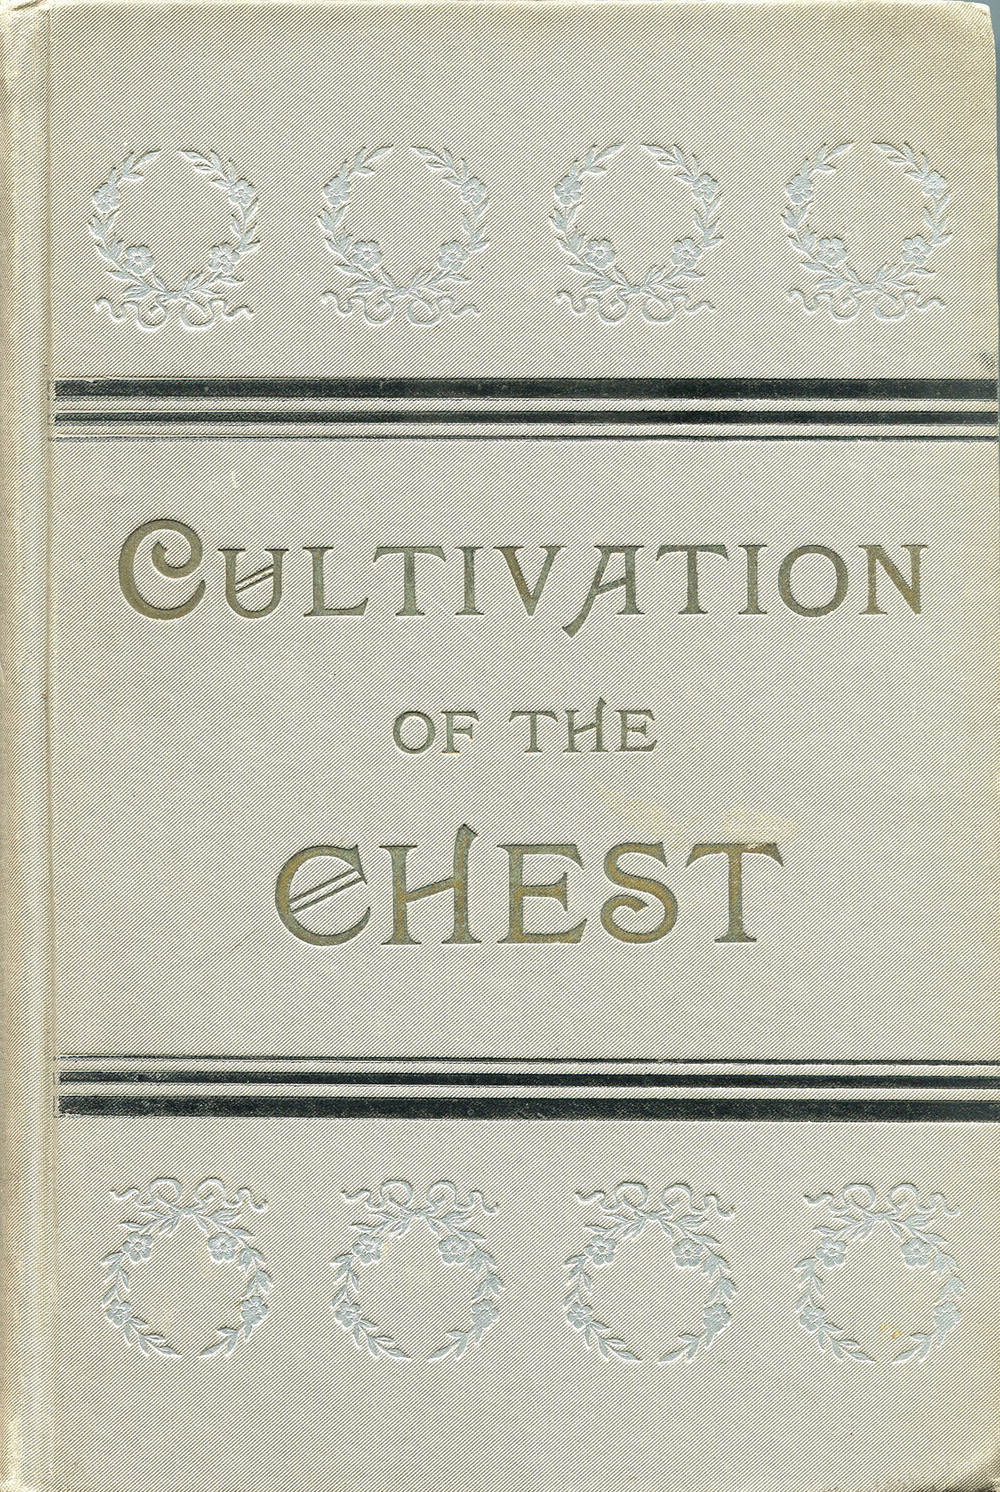 Cultivation Of The Chest by Edmond Shaftebury, 1895